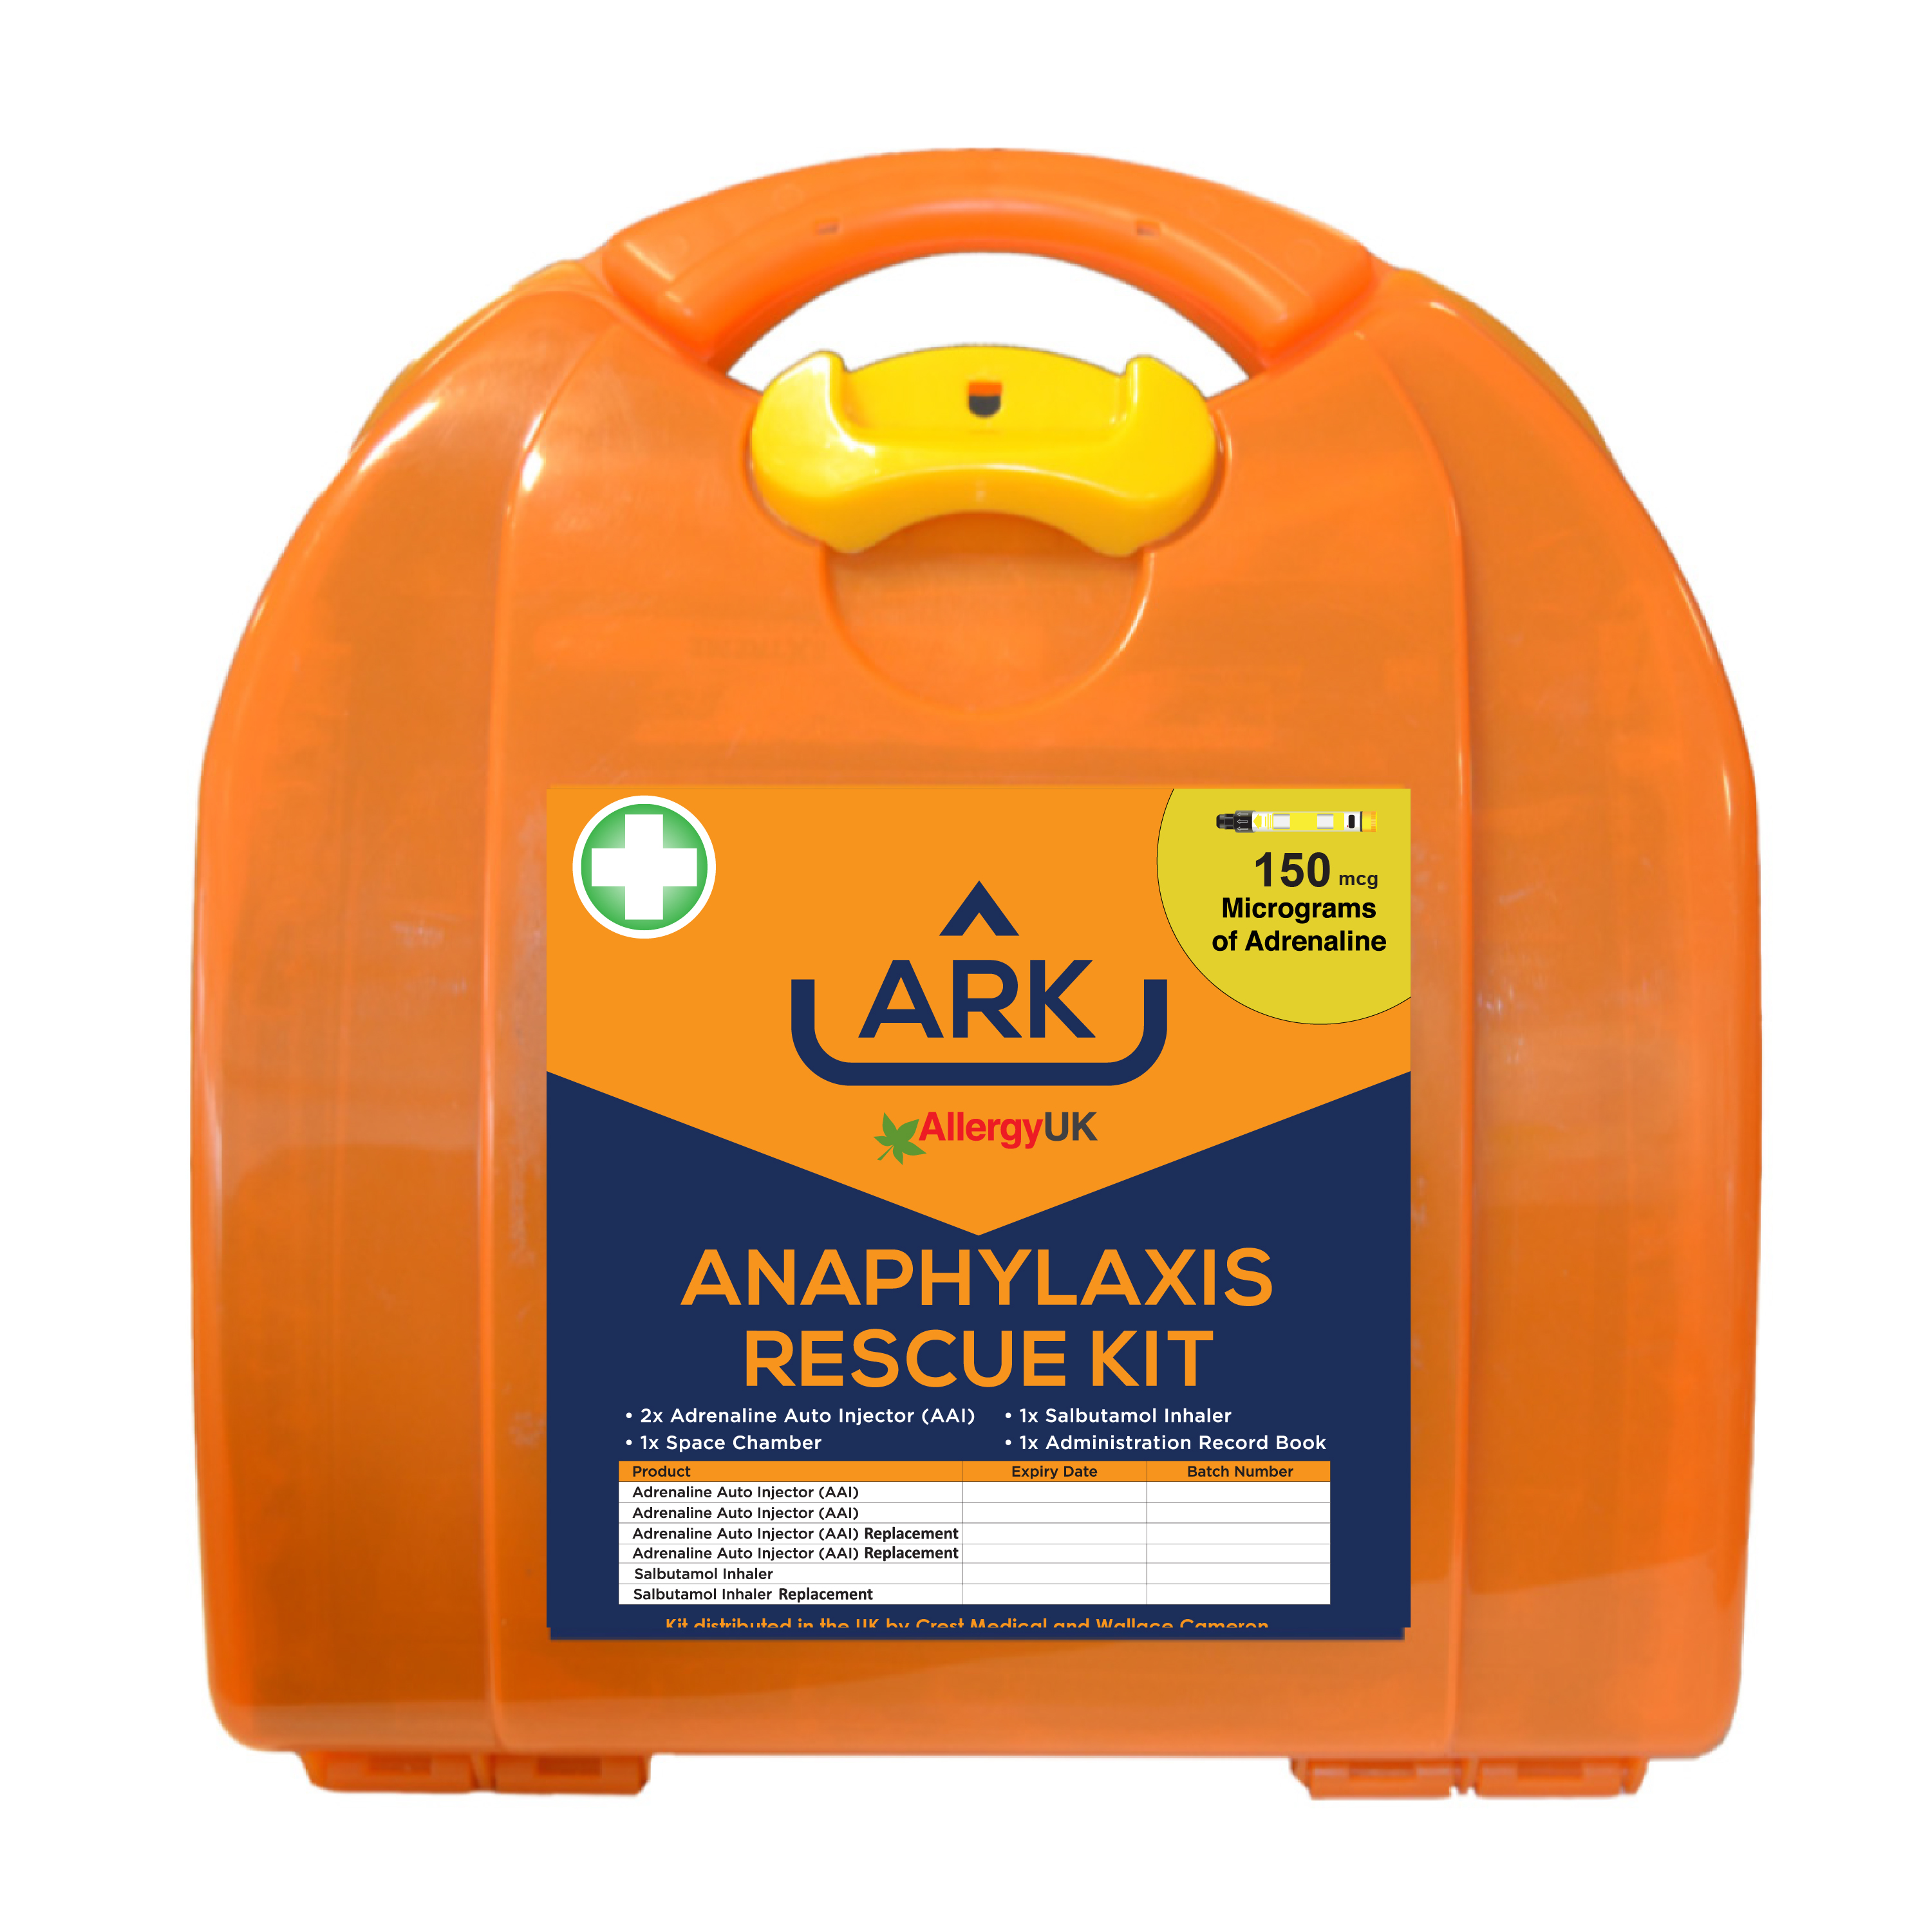 Anaphylaxis & Asthma Kits